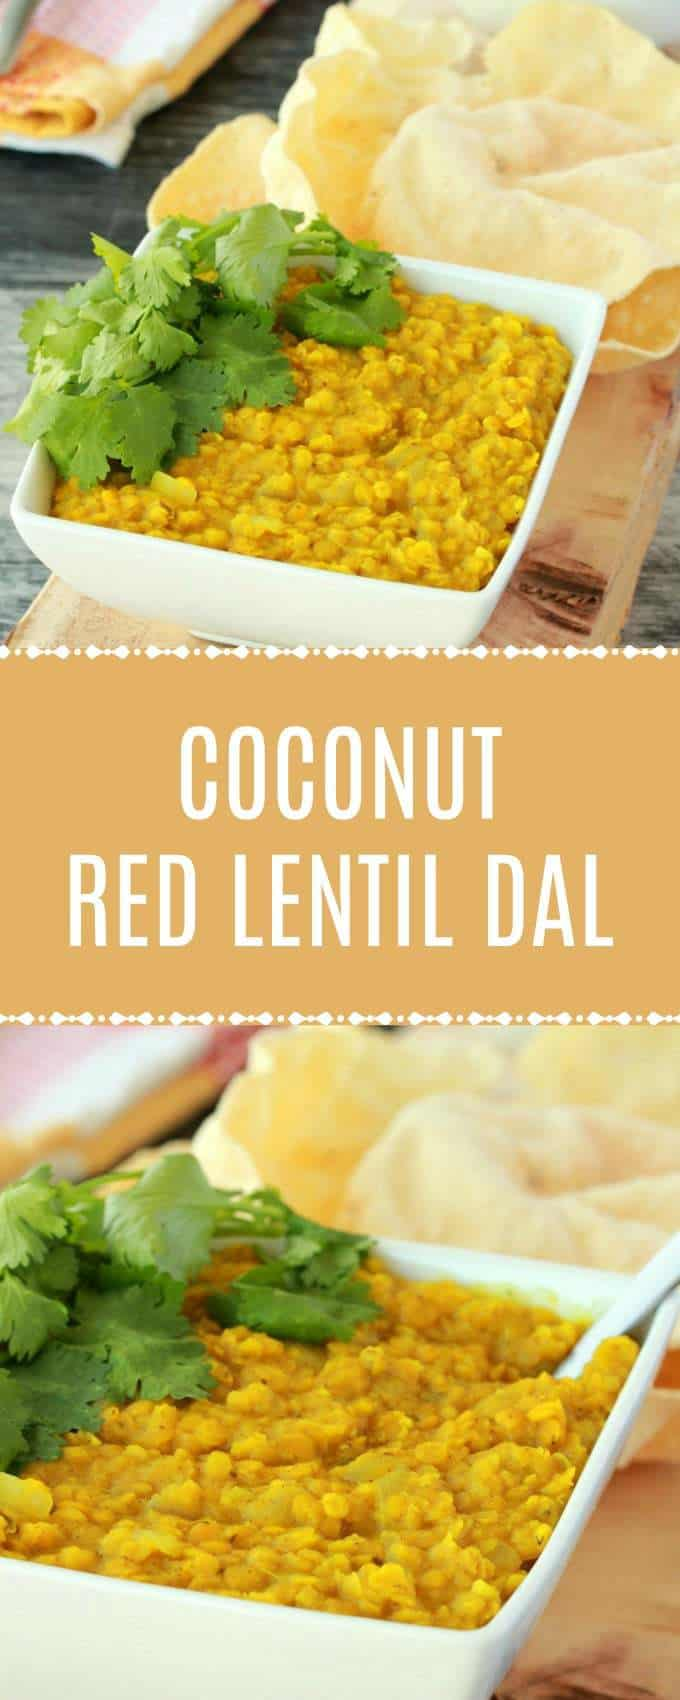 Creamy and ultra satisfying coconut and red lentil dal. This delicious plant-based entree is high in protein, perfectly spiced and highly flavorful. Vegan and gluten-free. #vegan #lovingitvegan #lentildal #entree #vegandinner #glutenfree | lovingitvegan.com